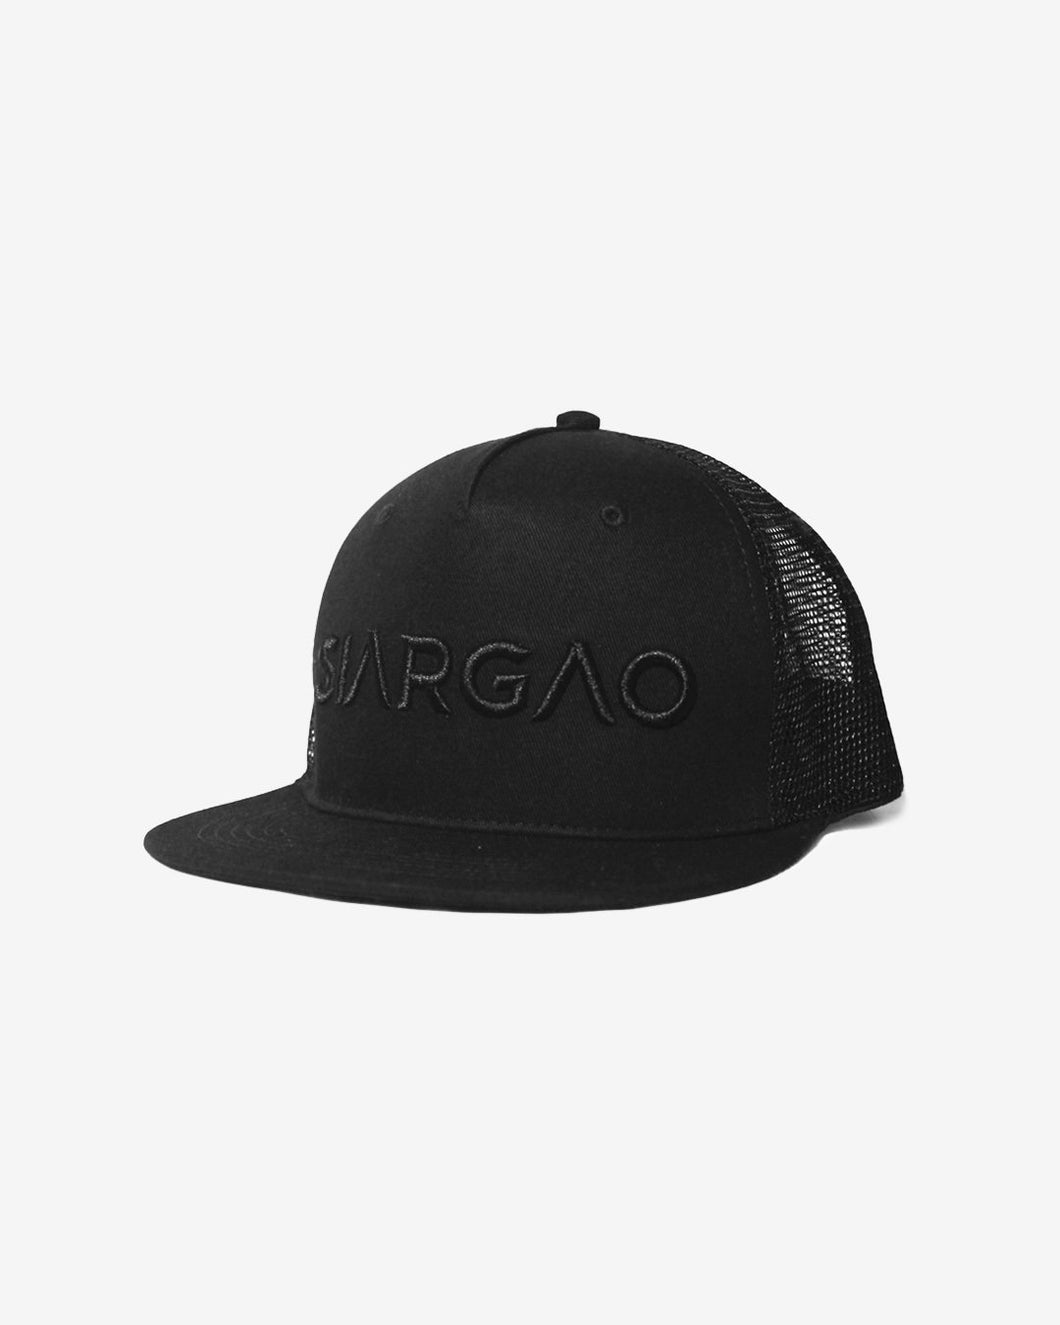 Gwapitos Siargao Trucker Cap Black/Black - KS Boardriders | Philippines Online Branded Clothes & Surf Shop